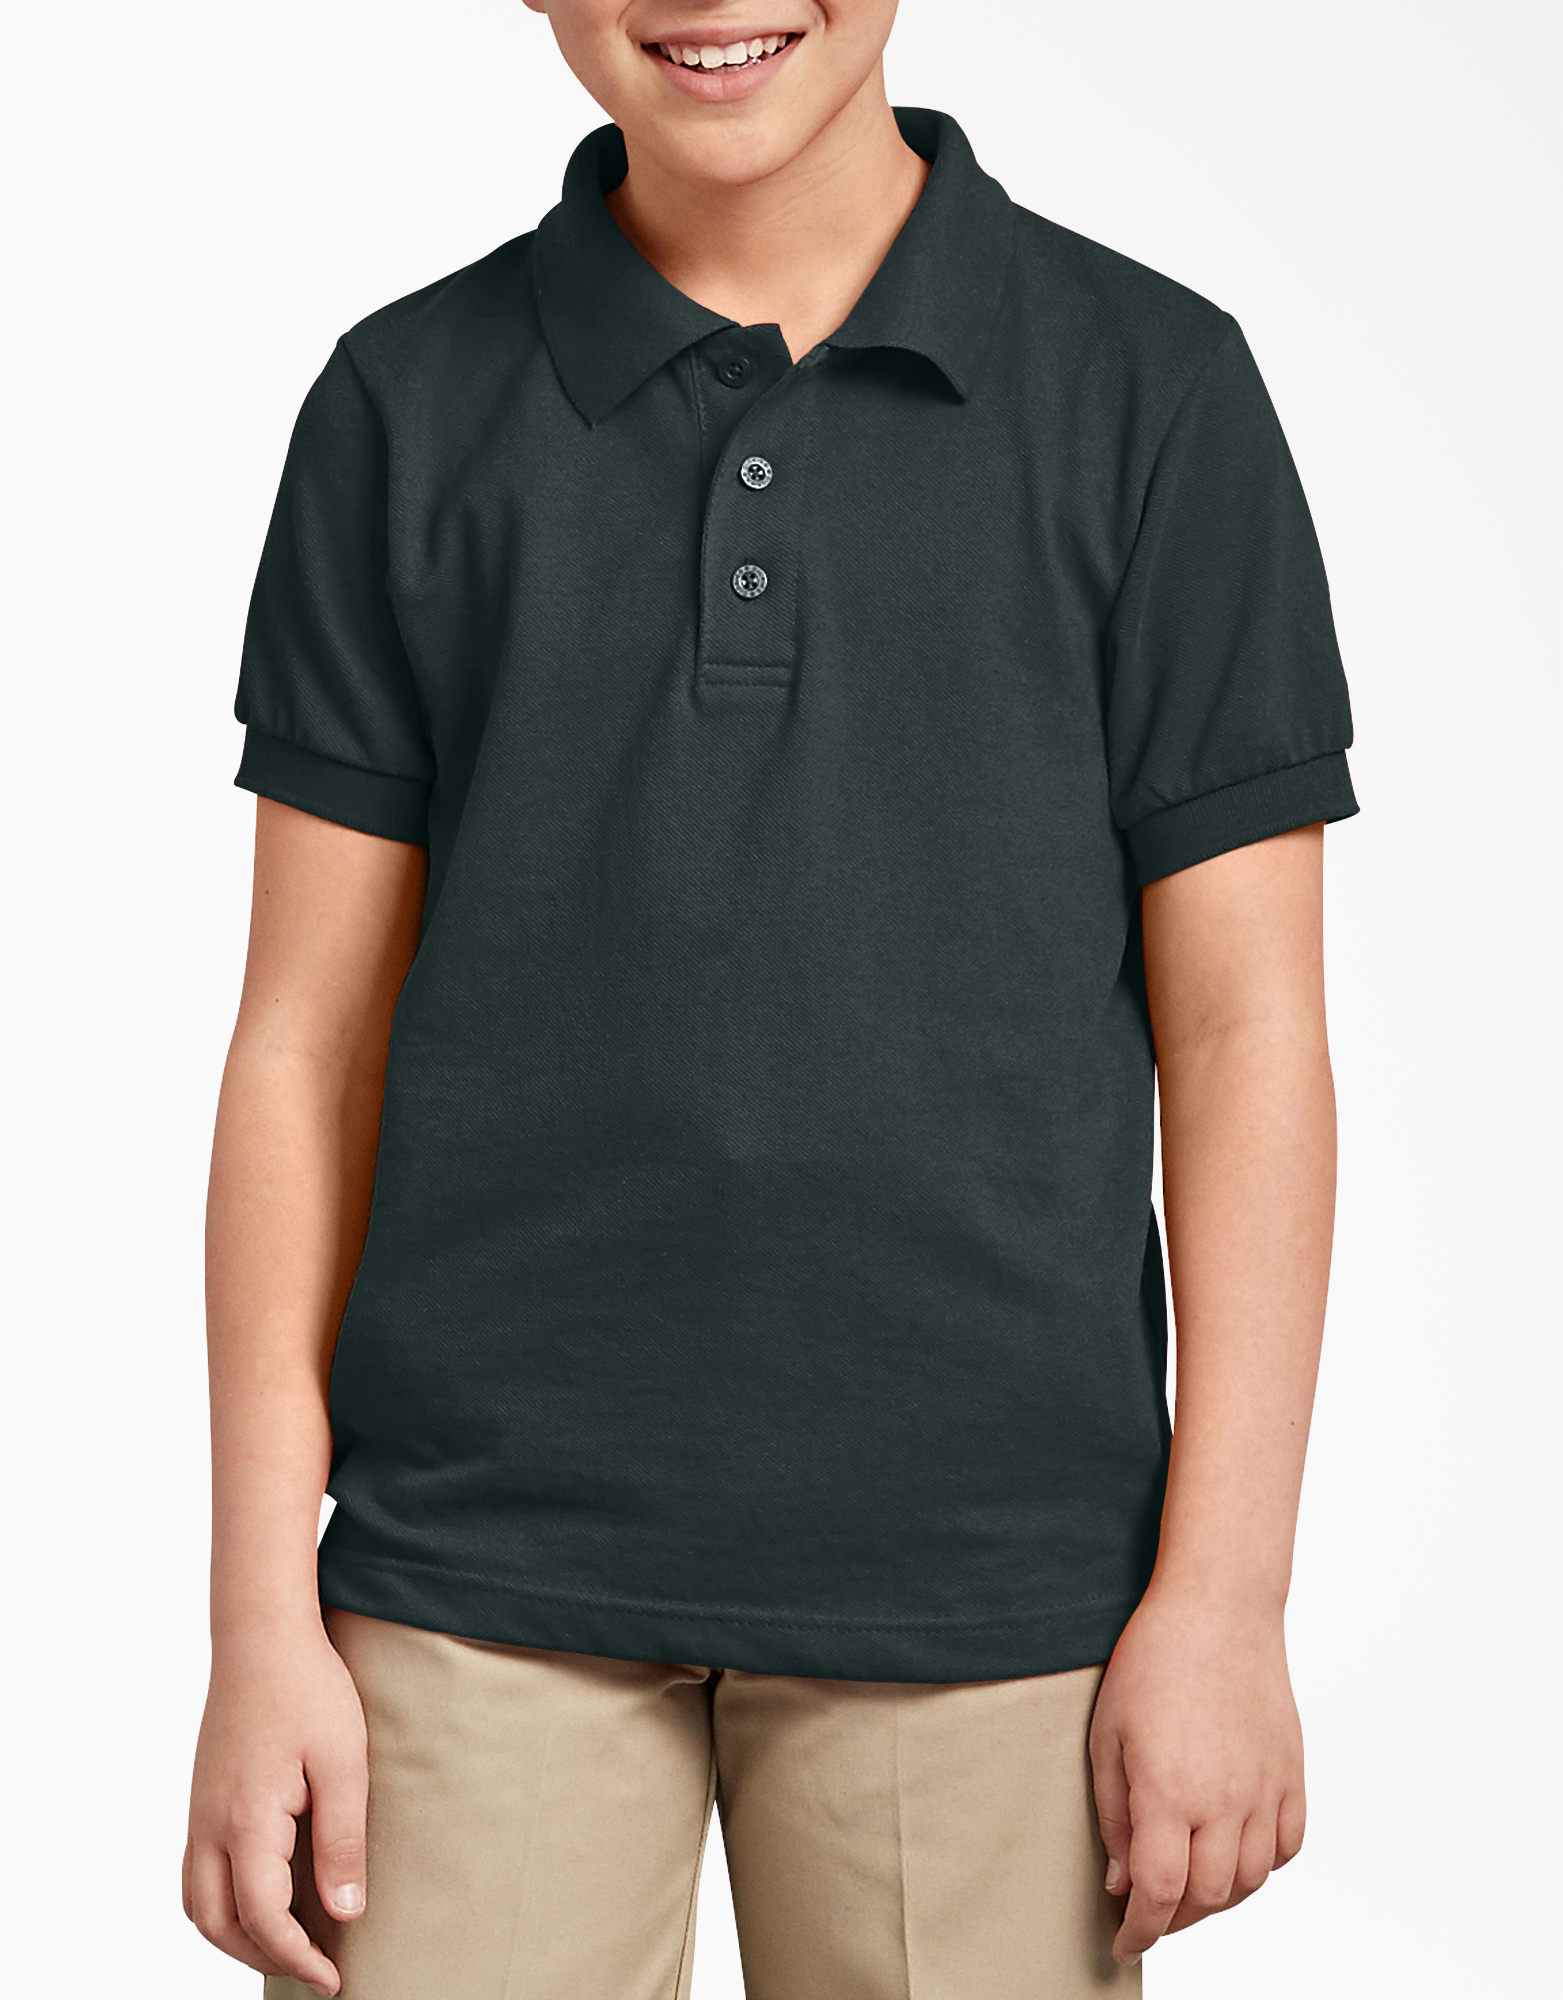 Kids' Short Sleeve Pique Polo Shirt, 4-20 - Hunter Green (GH)